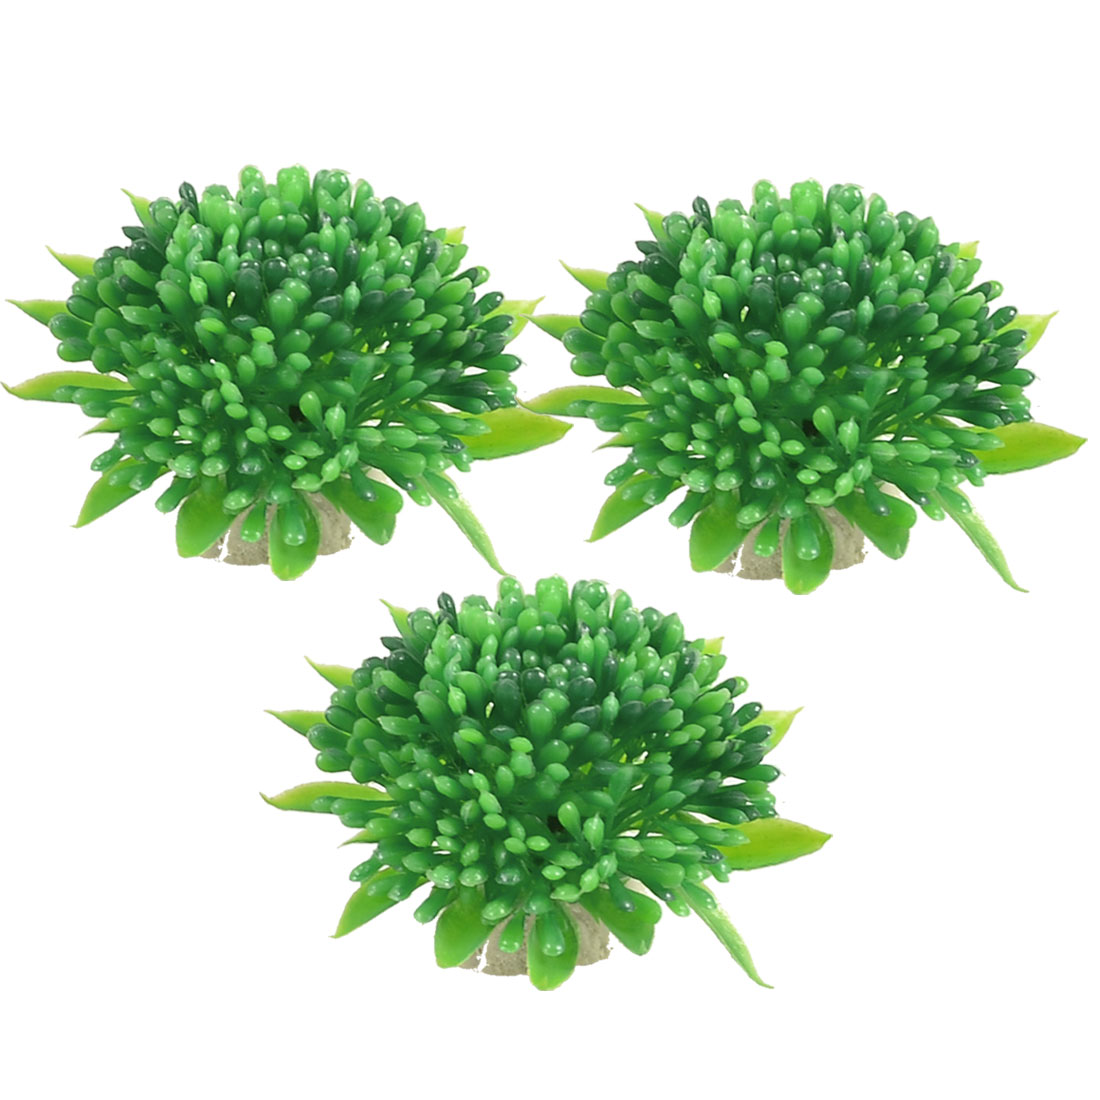 3 Pcs Green Lifelike Aquarium Plastic Plant Flower Decoration